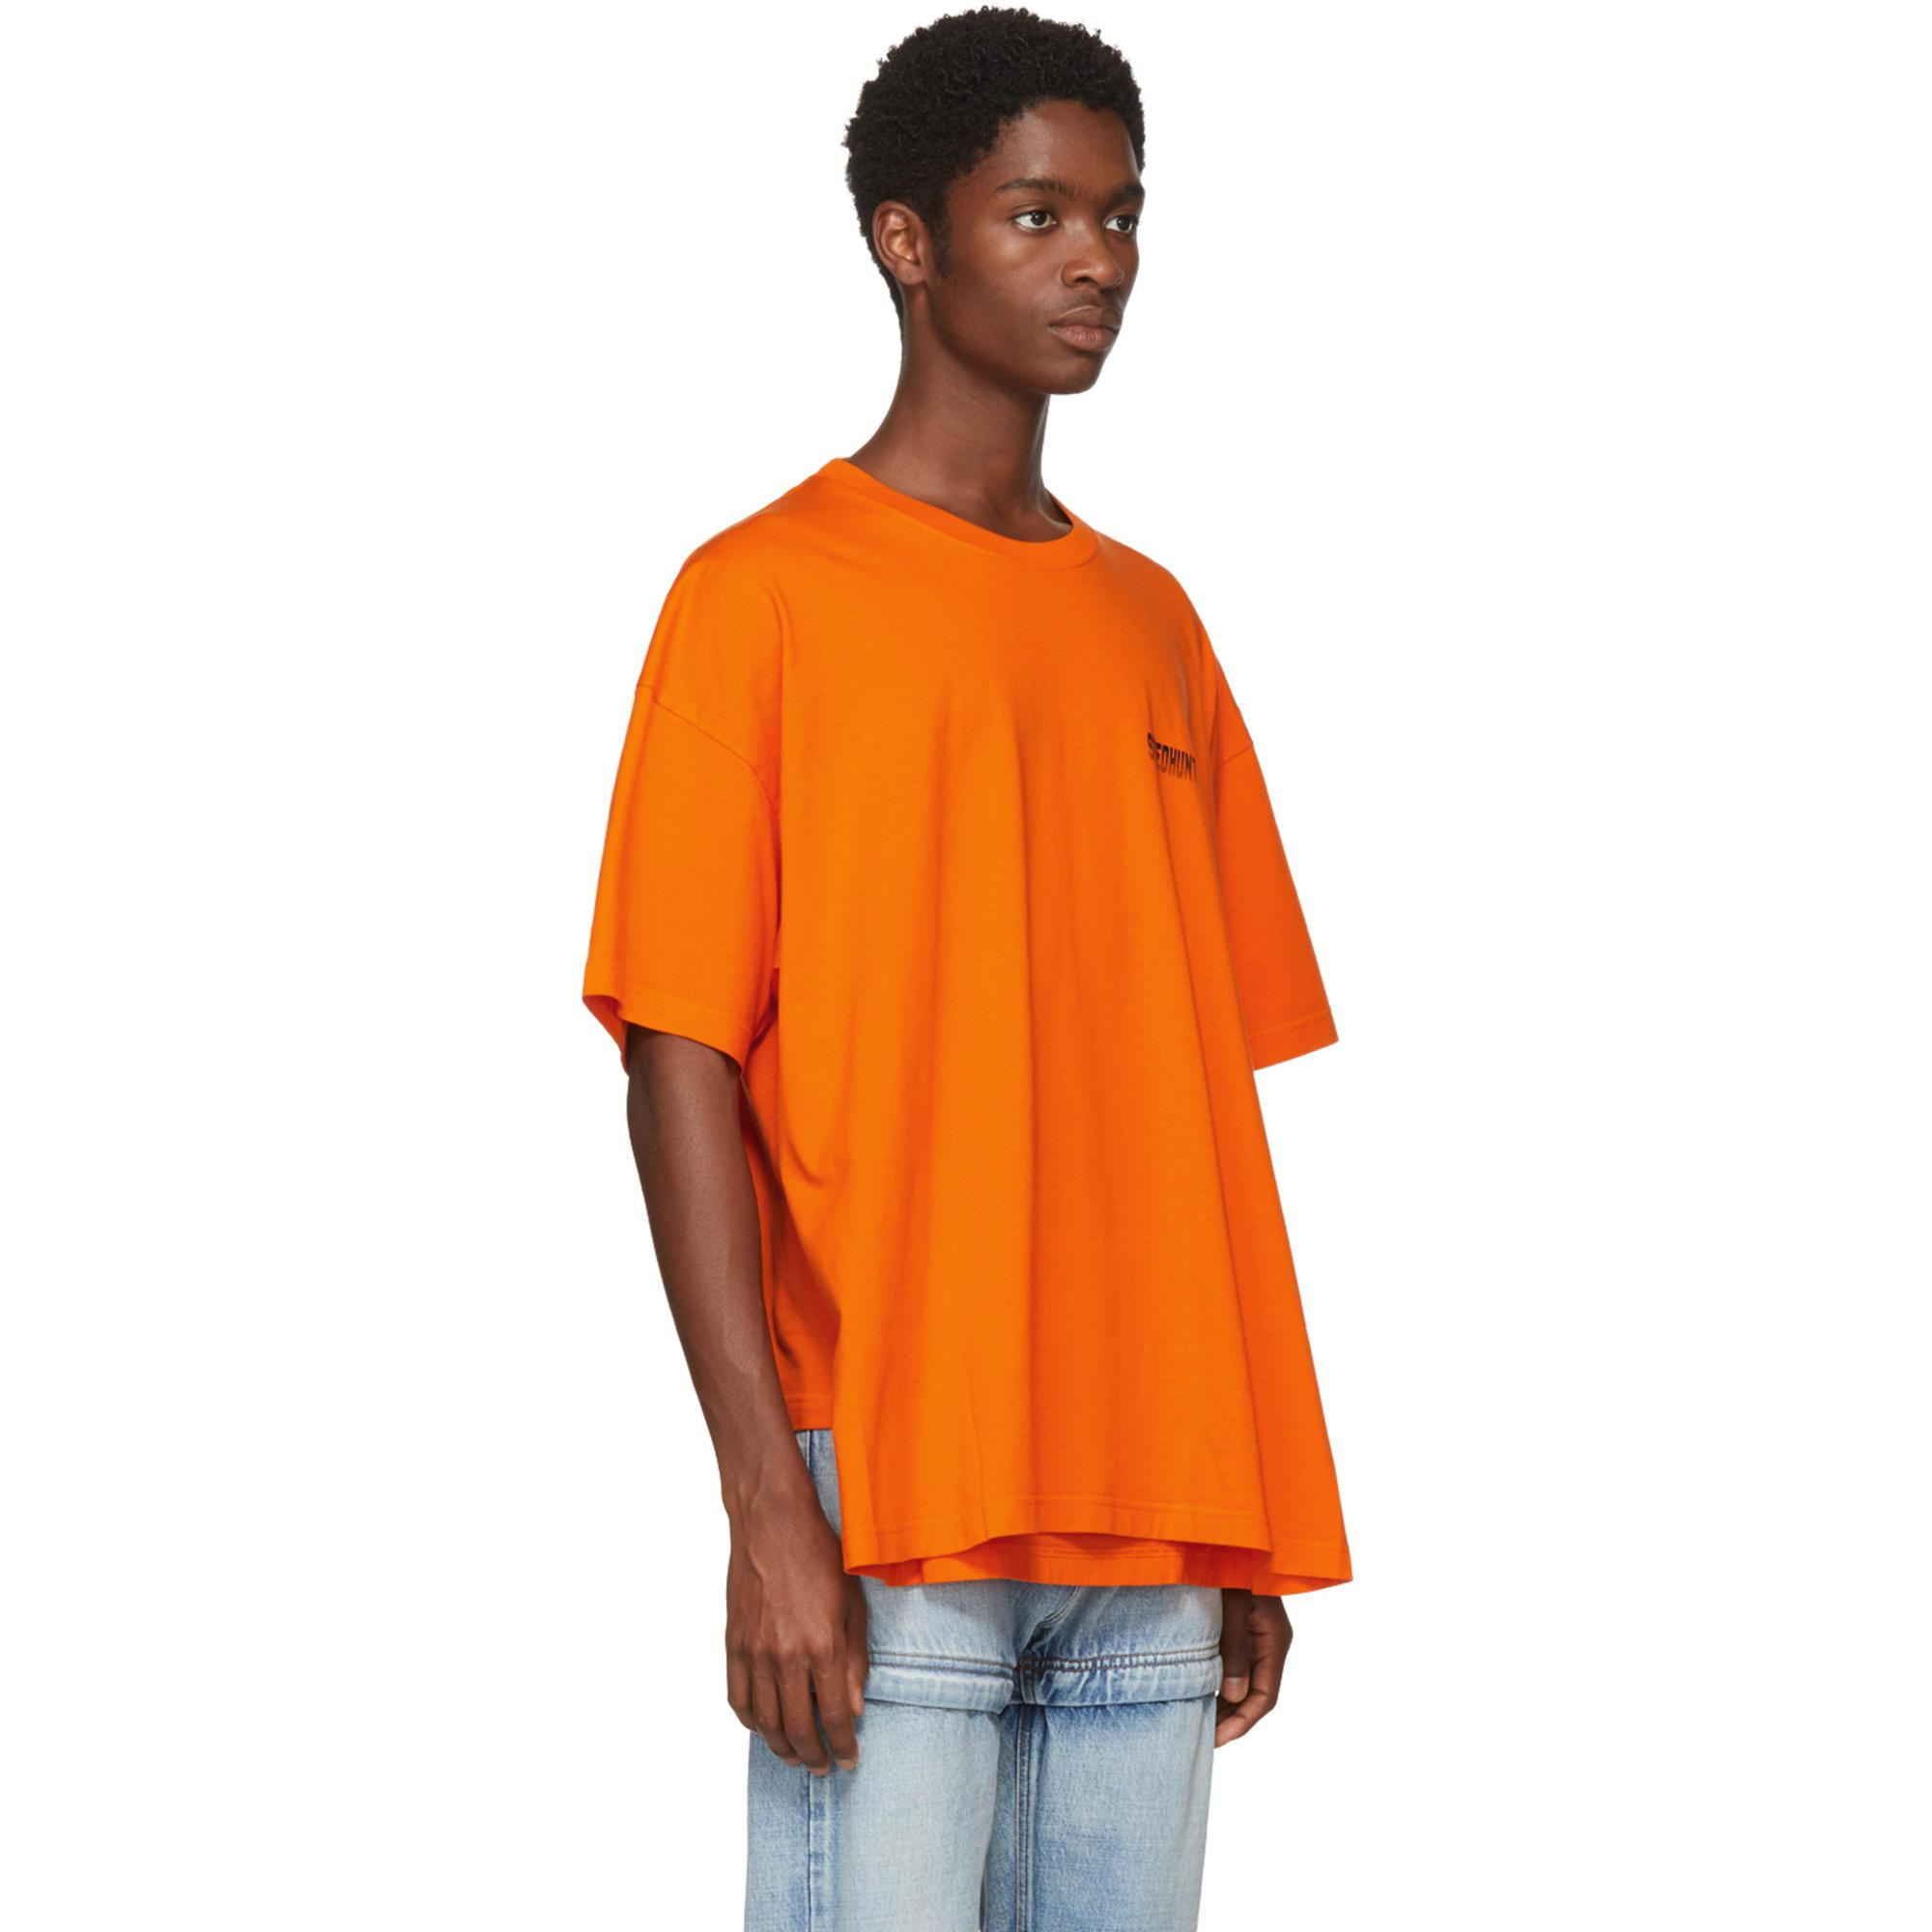 1baea74dcf44 Balenciaga Orange Speedhunter Double Hem T-shirt in Orange for Men ...